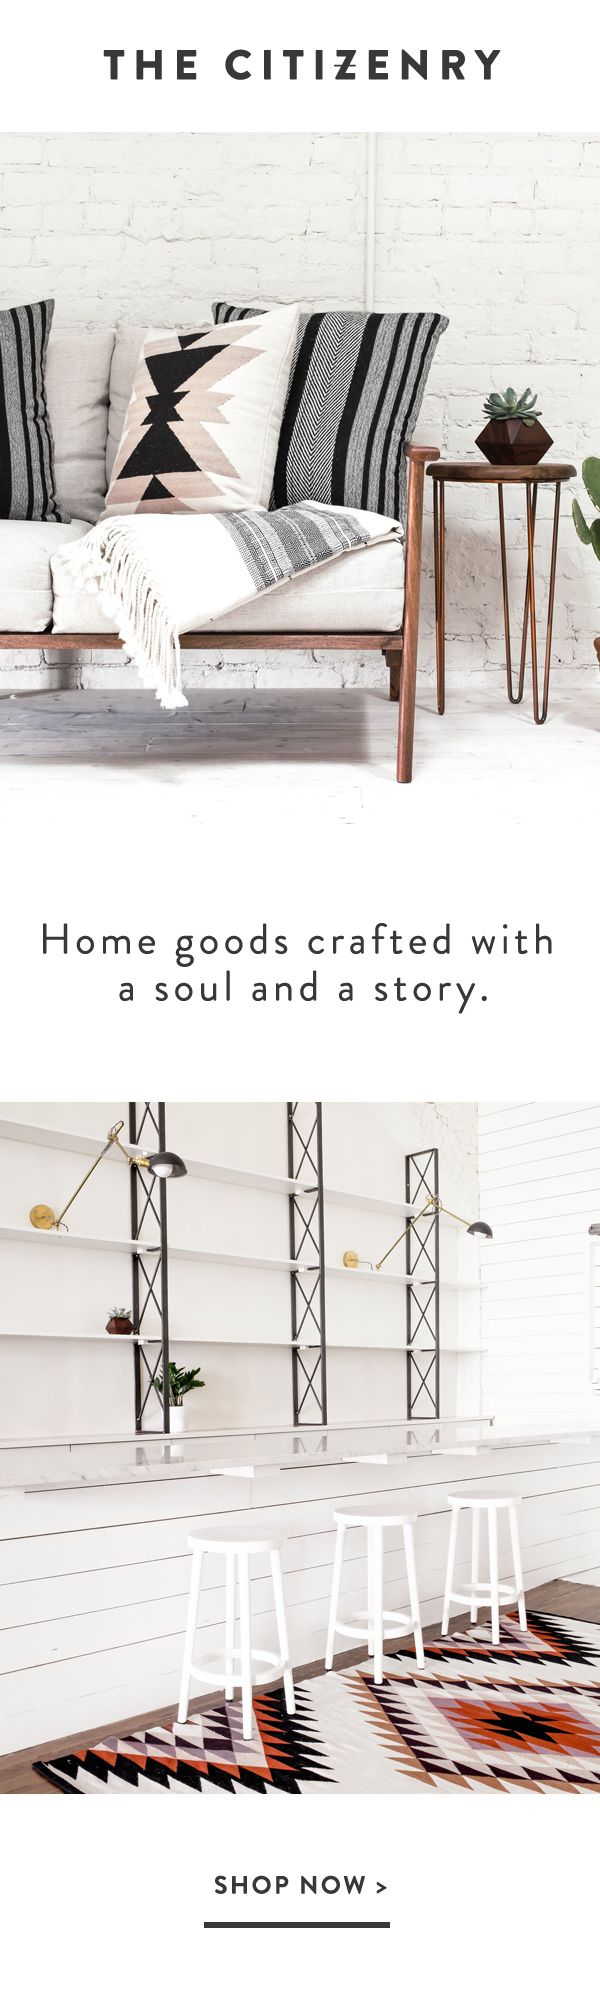 Meet The Citizenry. A home decor brand bringing a modern take on time-tested global traditions.